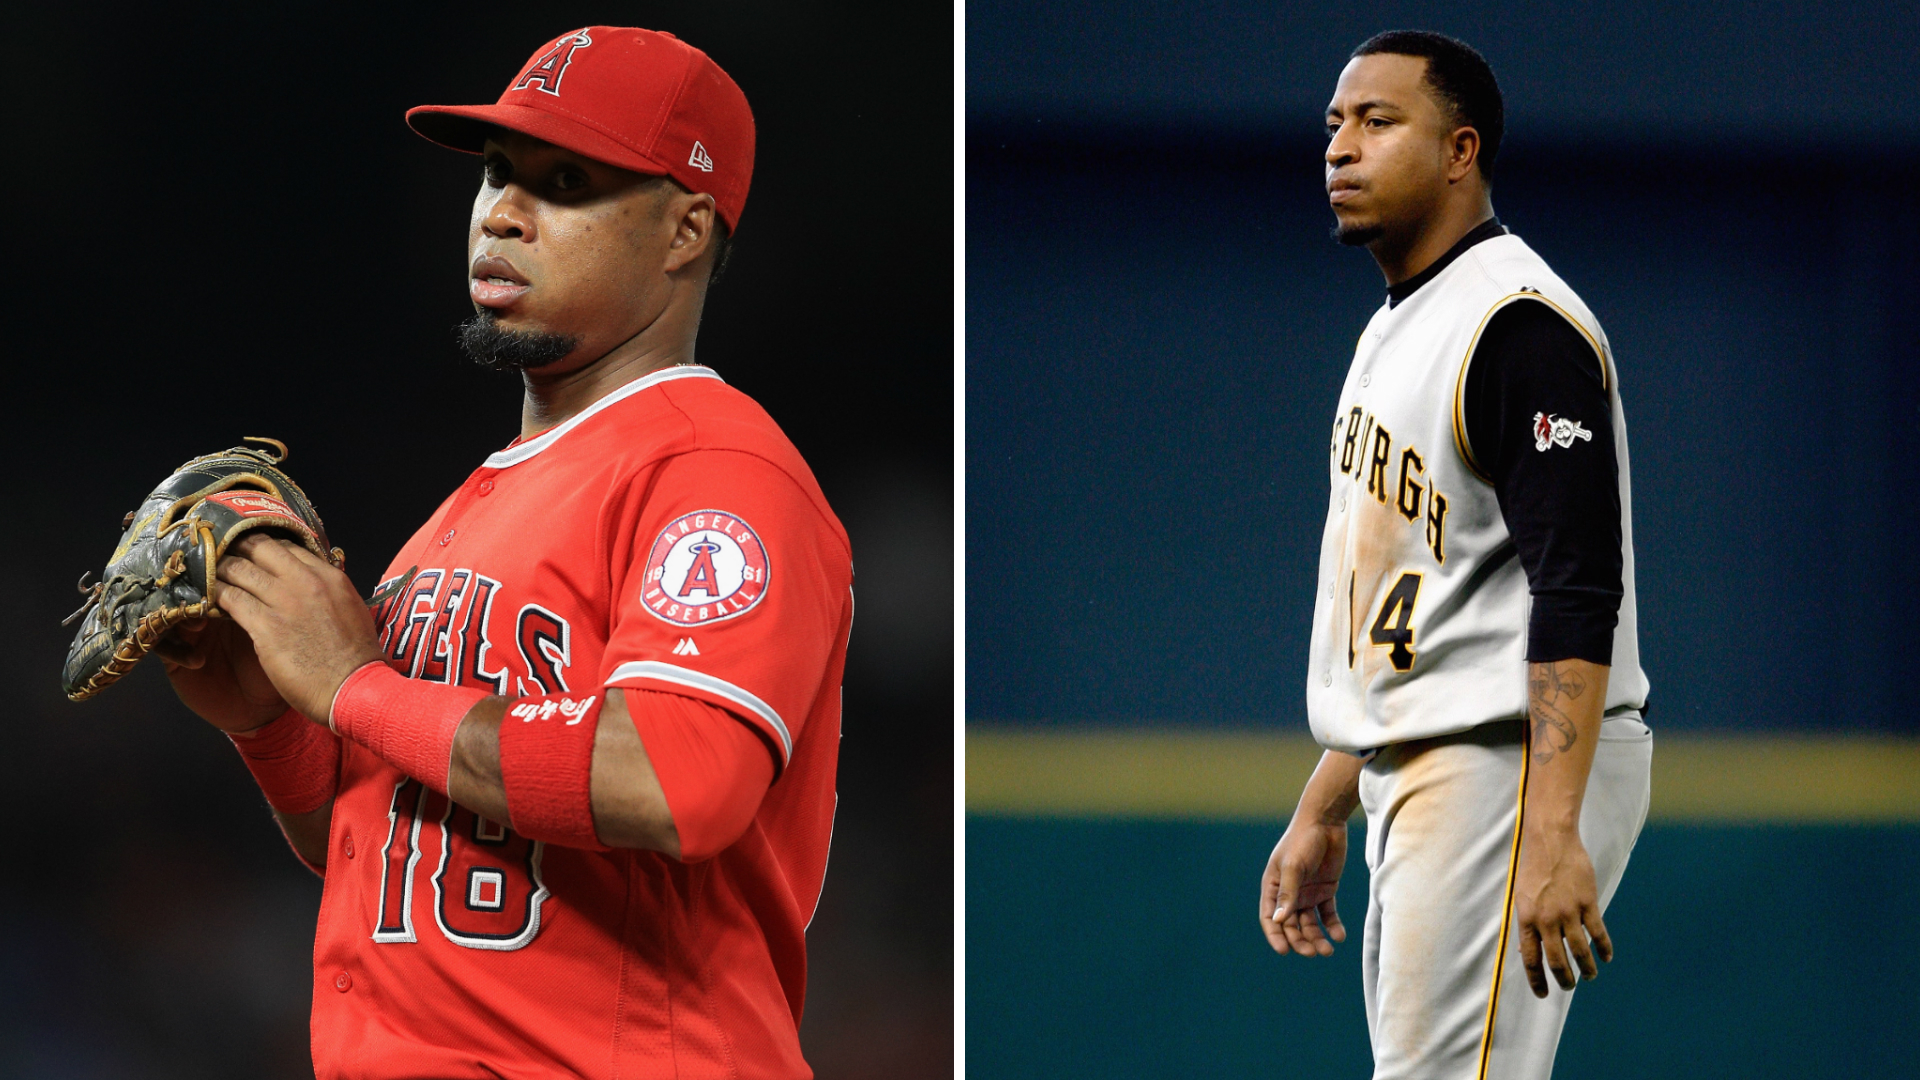 Luis Valbuena, Jose Castillo killed in auto  crash in Venezuela